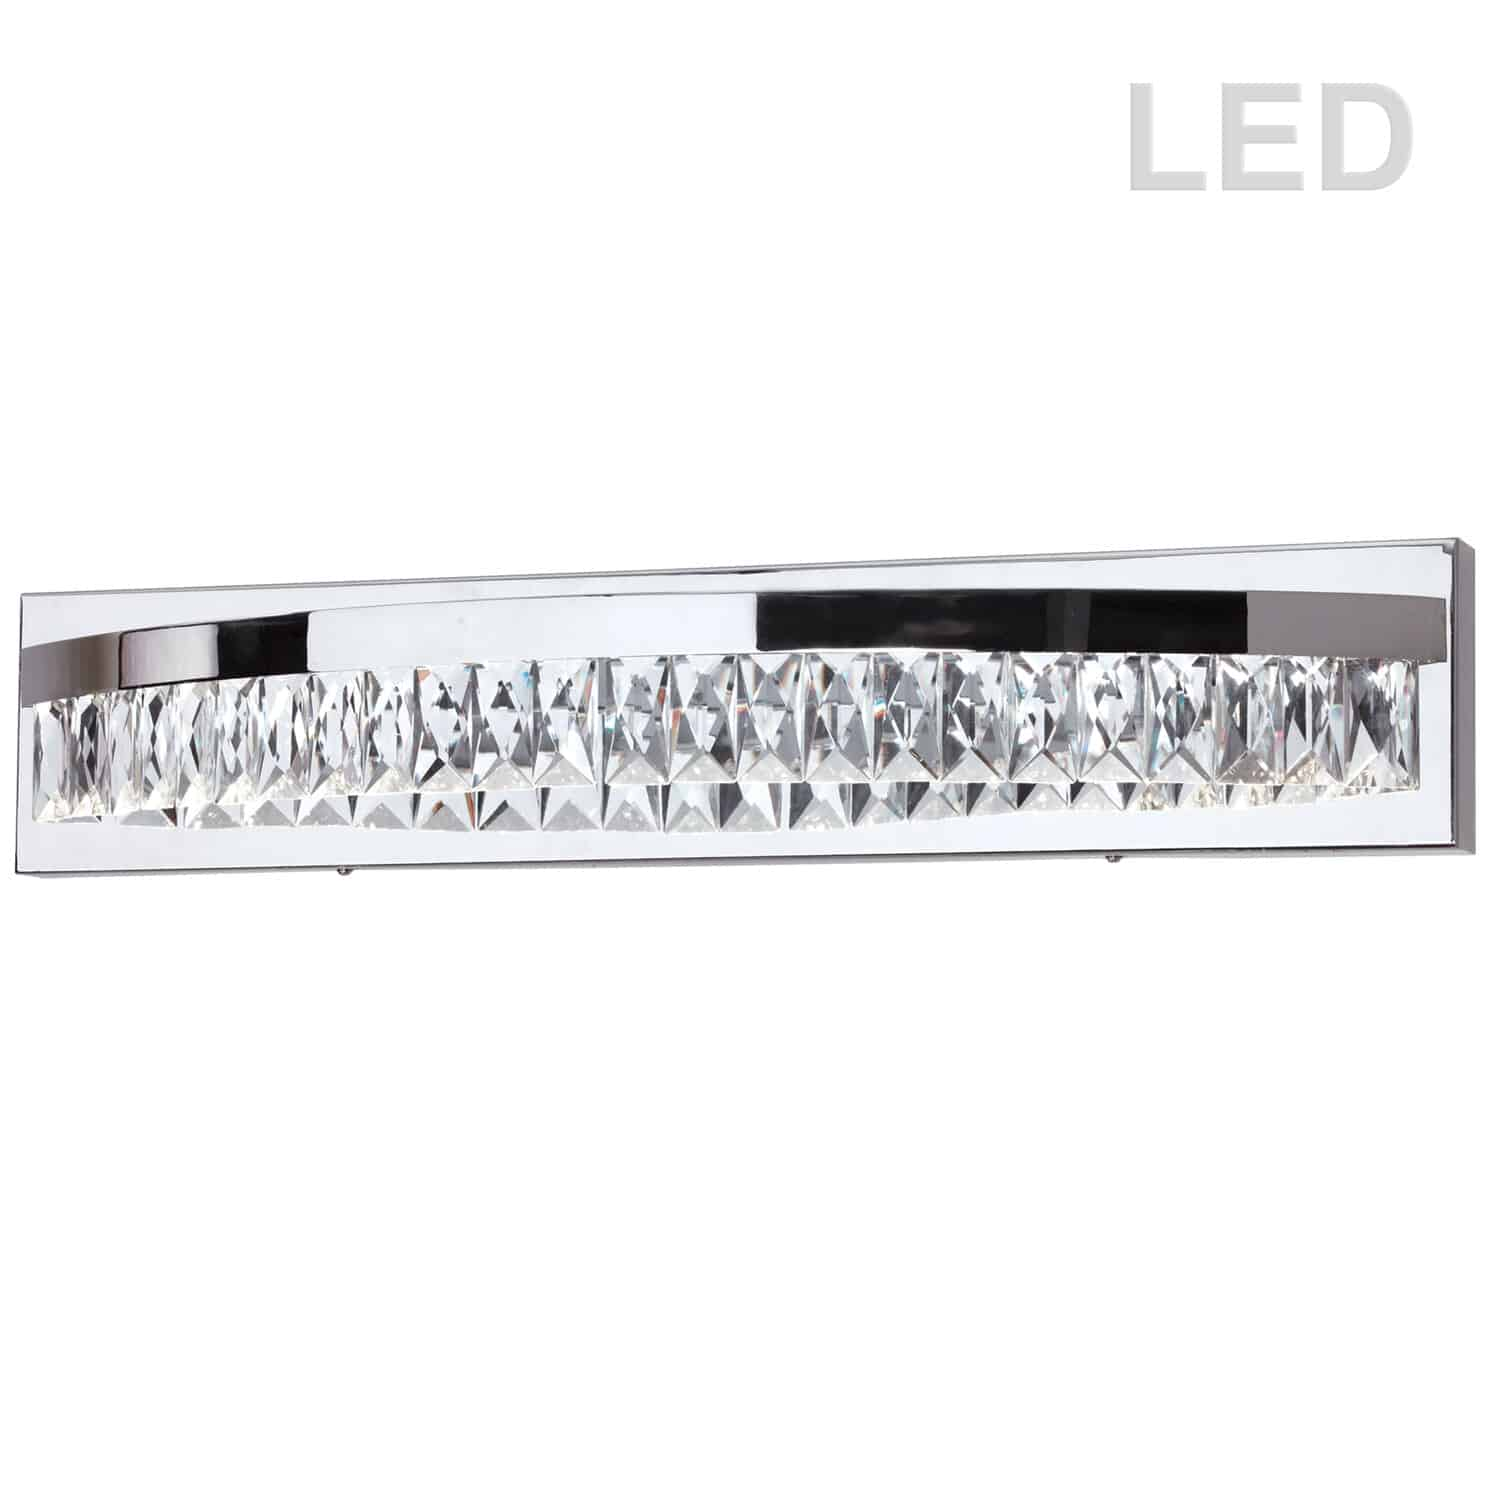 21W LED Vanity, Polished Chrome Finish with Crystals hanging